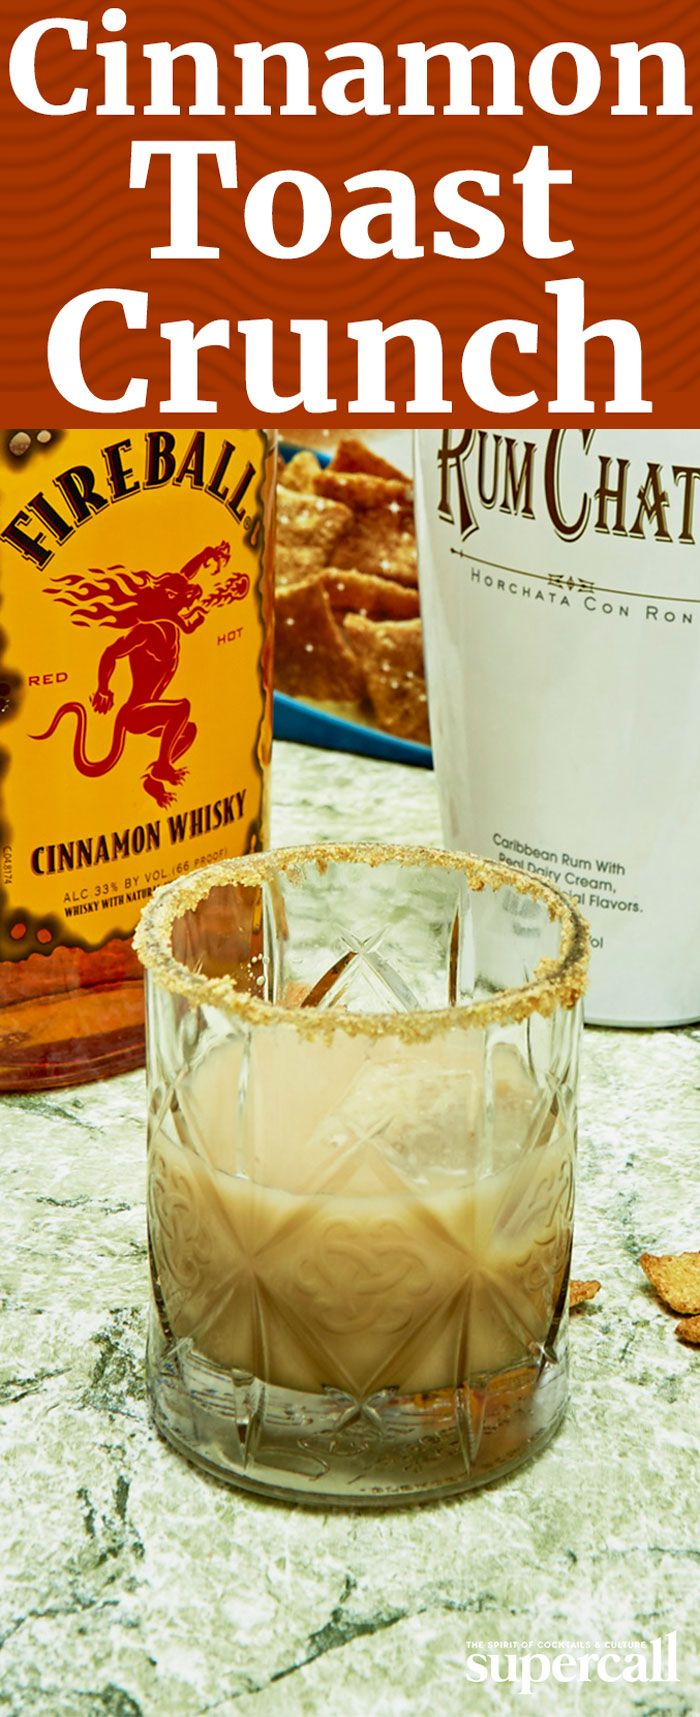 When you mix Fireball and Rumchata, you get a cocktail that tastes shocking like liquid Cinnamon Toast Crunch. So we figured, why not take it one step further and rim it with the actual cereal?